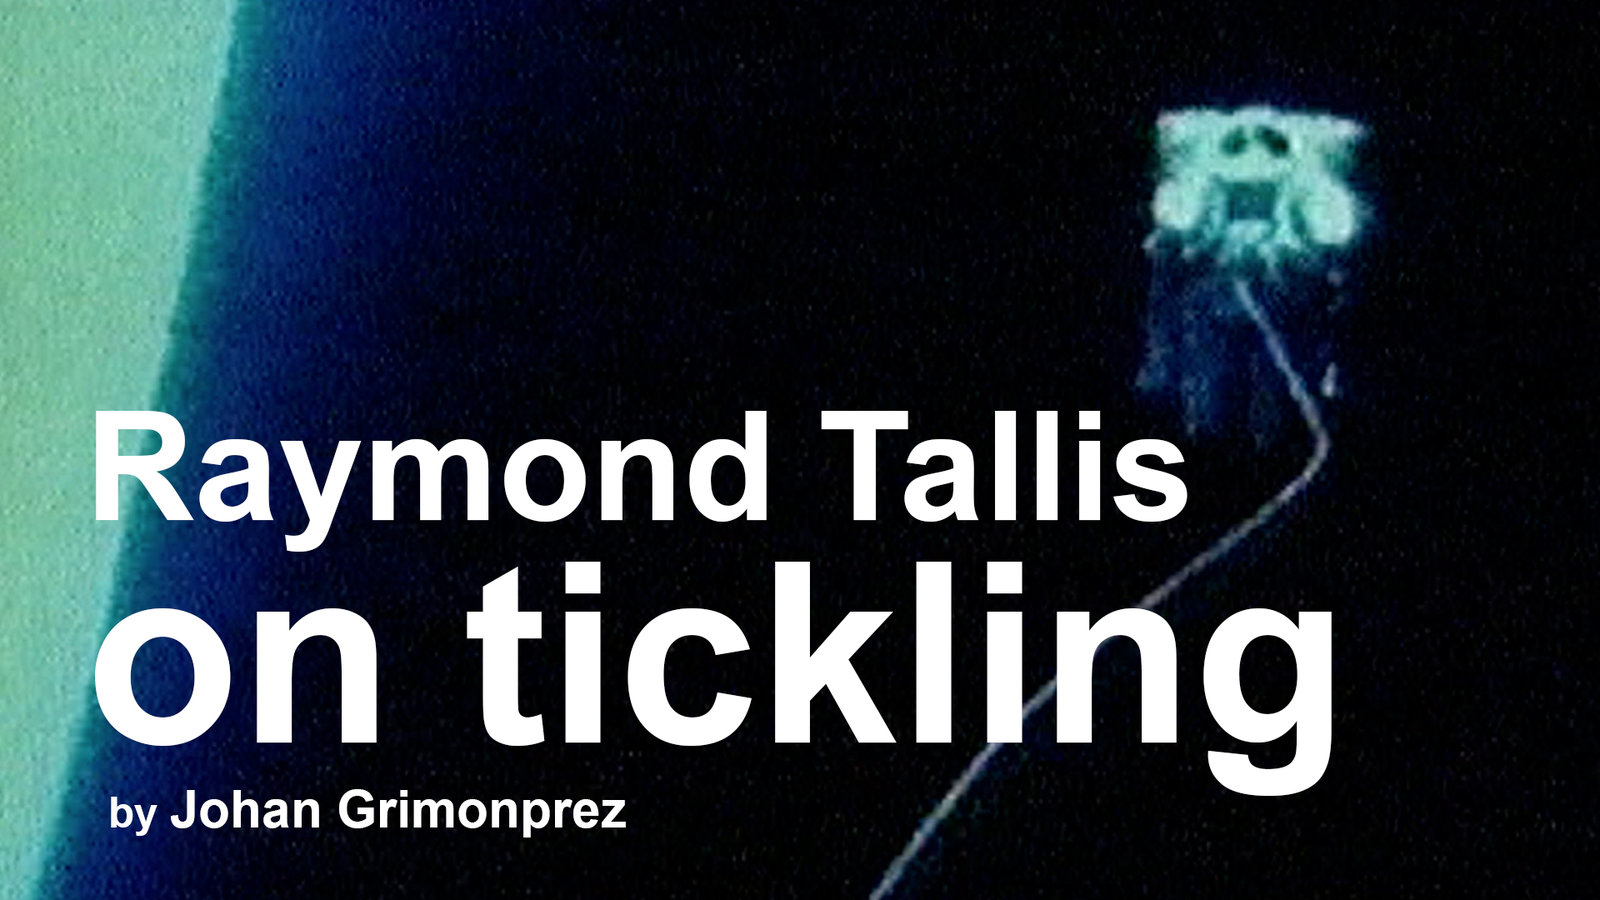 Raymond Tallis: On Tickling - A Discussion on Consciousness